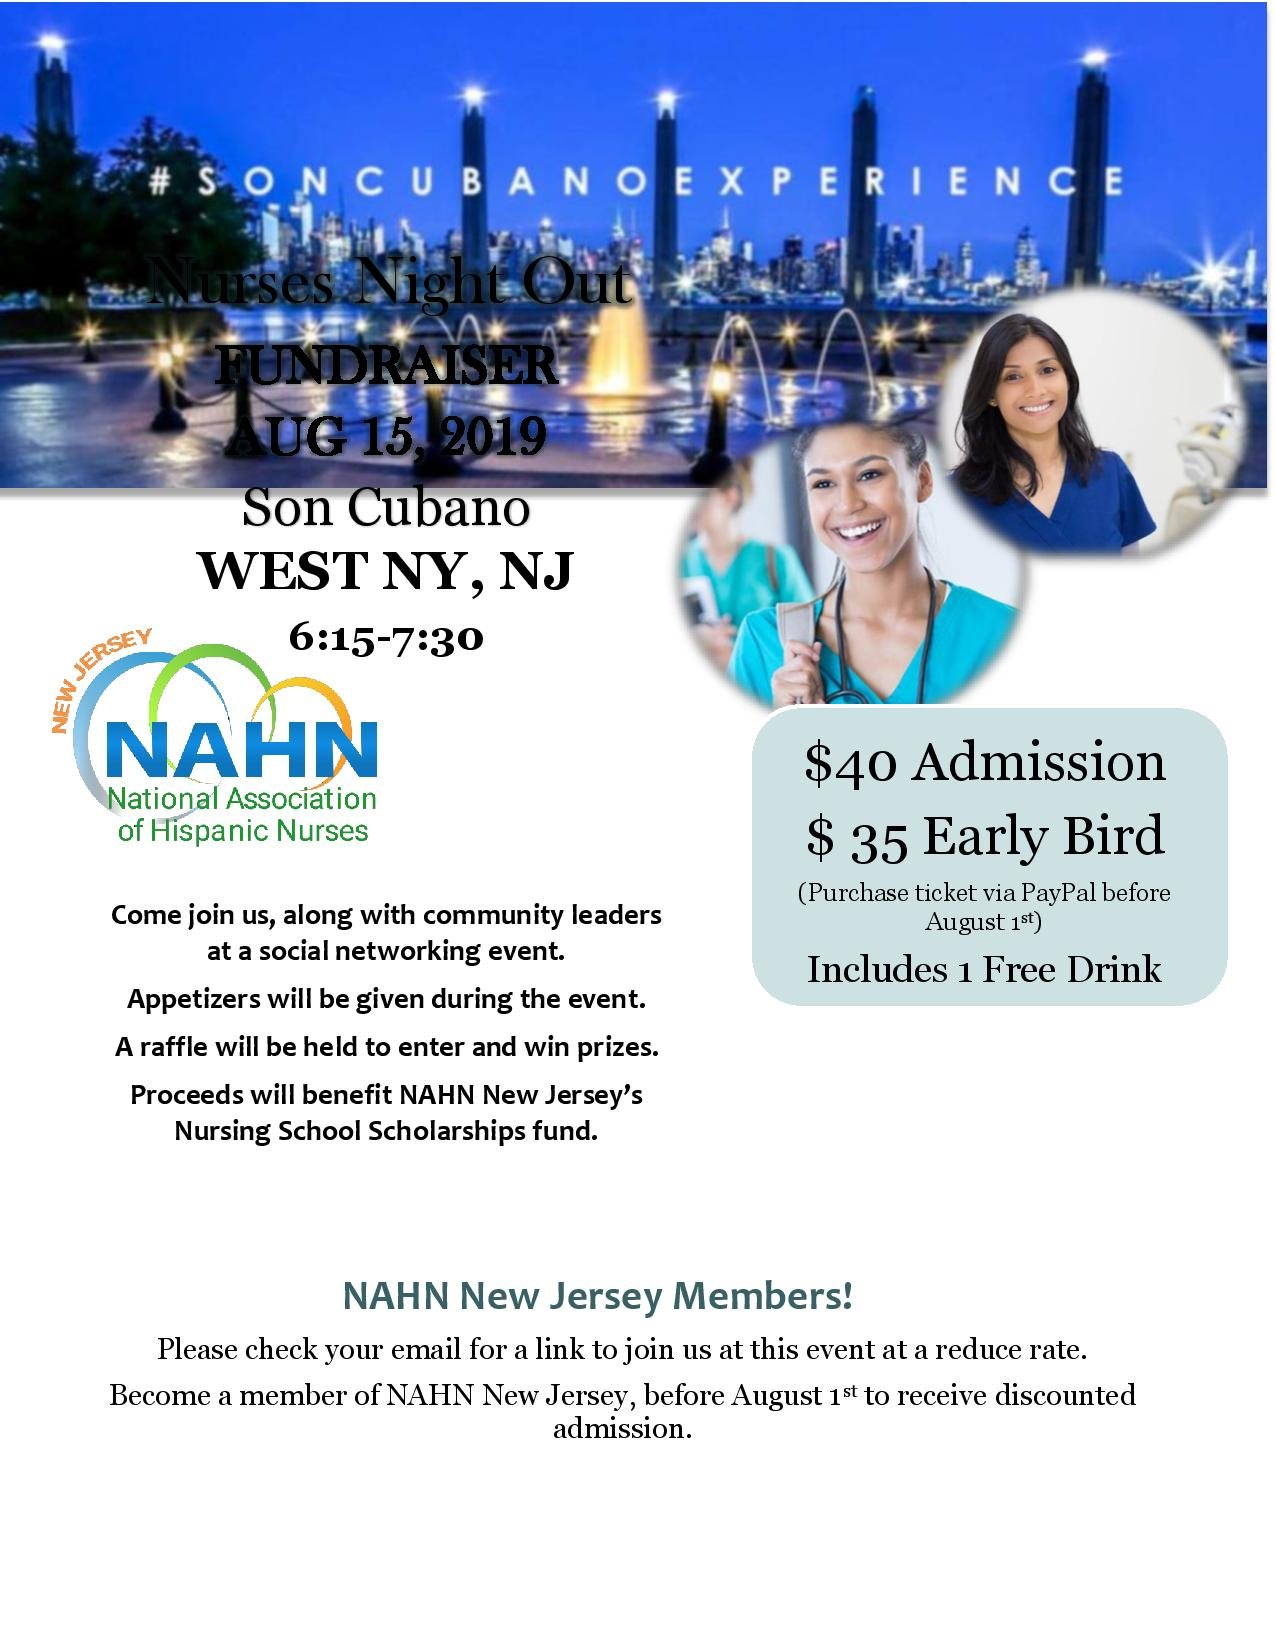 Nurses Night Out flyer